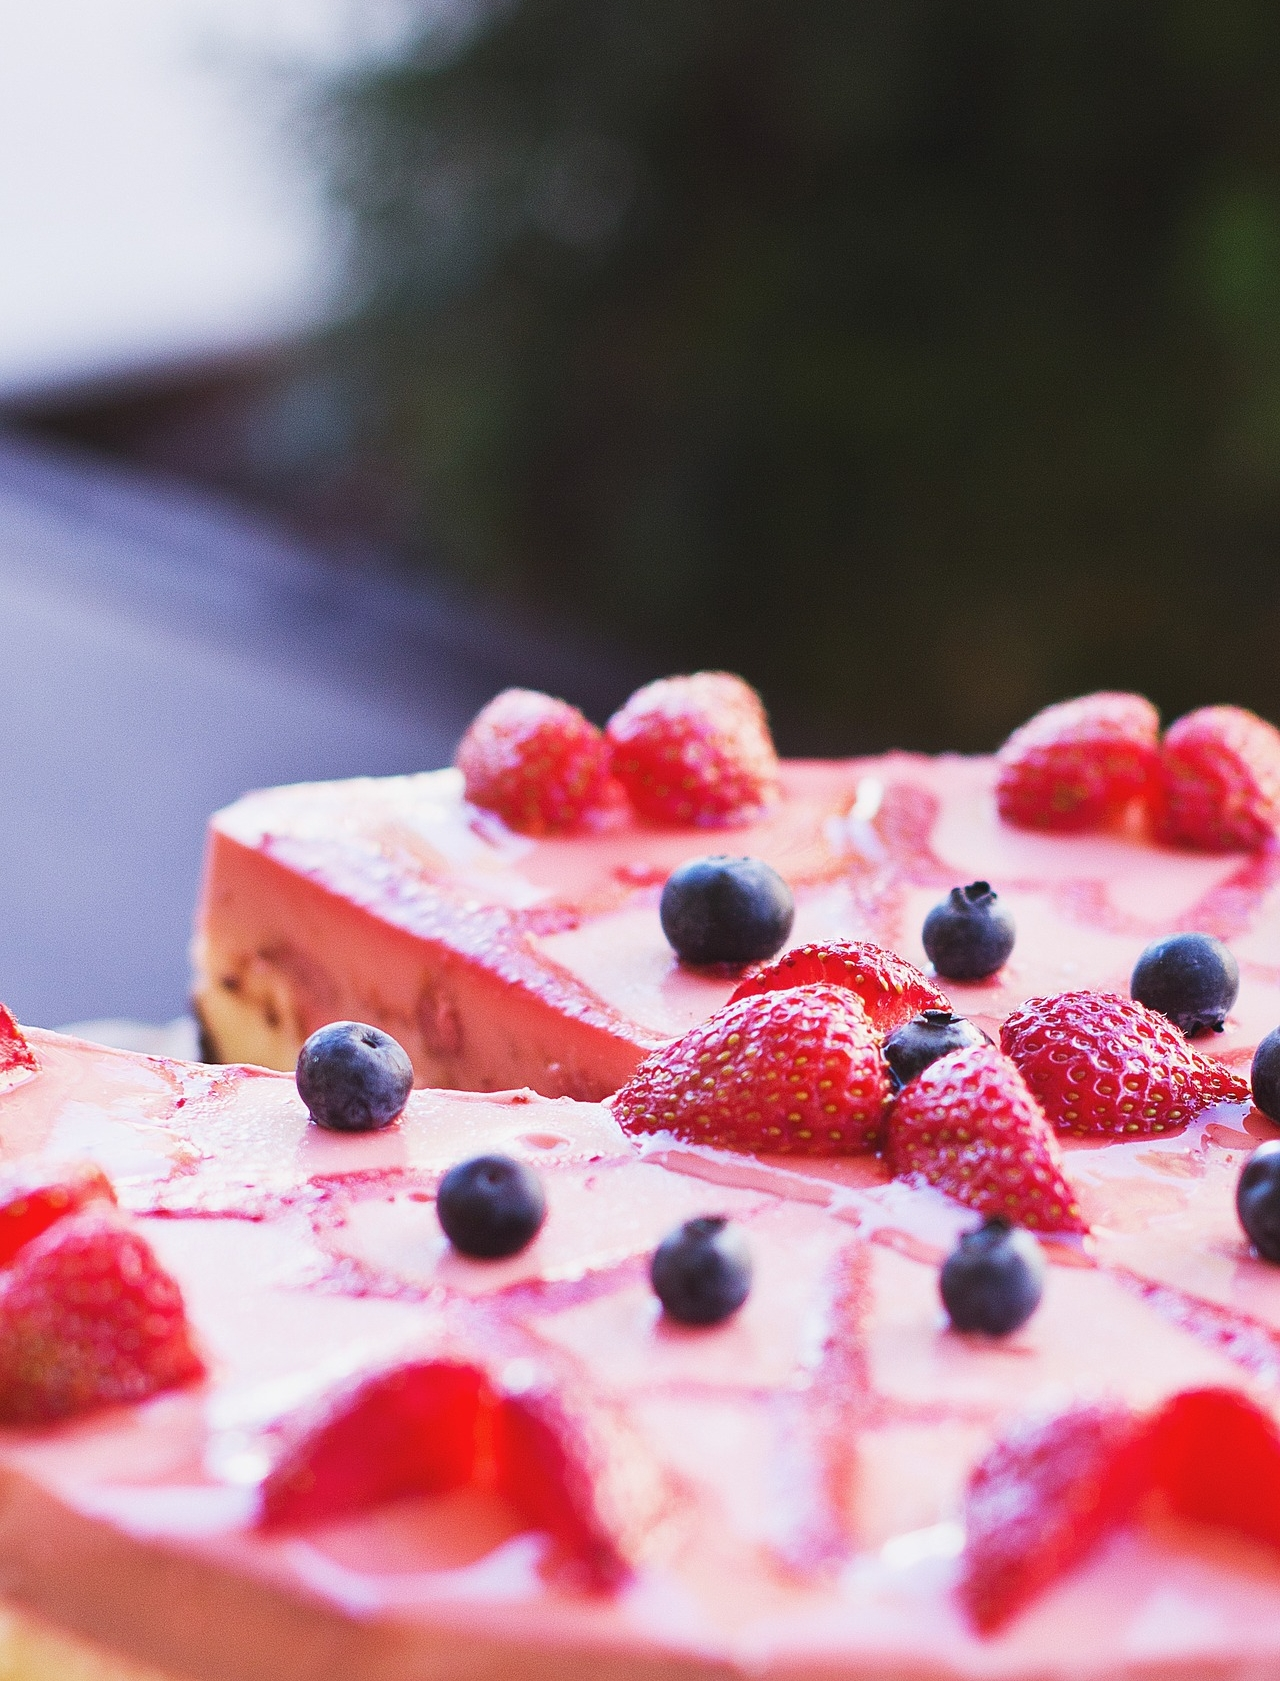 This creamy cashew based cheesecake is easy to pull together. It's also fashionably tinted pink thanks to fresh strawberries. Make sure you plan this one in advance - once all of the ingredients are combined, it needs time to sit in the freezer for a few hours to set up. Trust us, adhering to the recommended chilling time will reward you through and through.